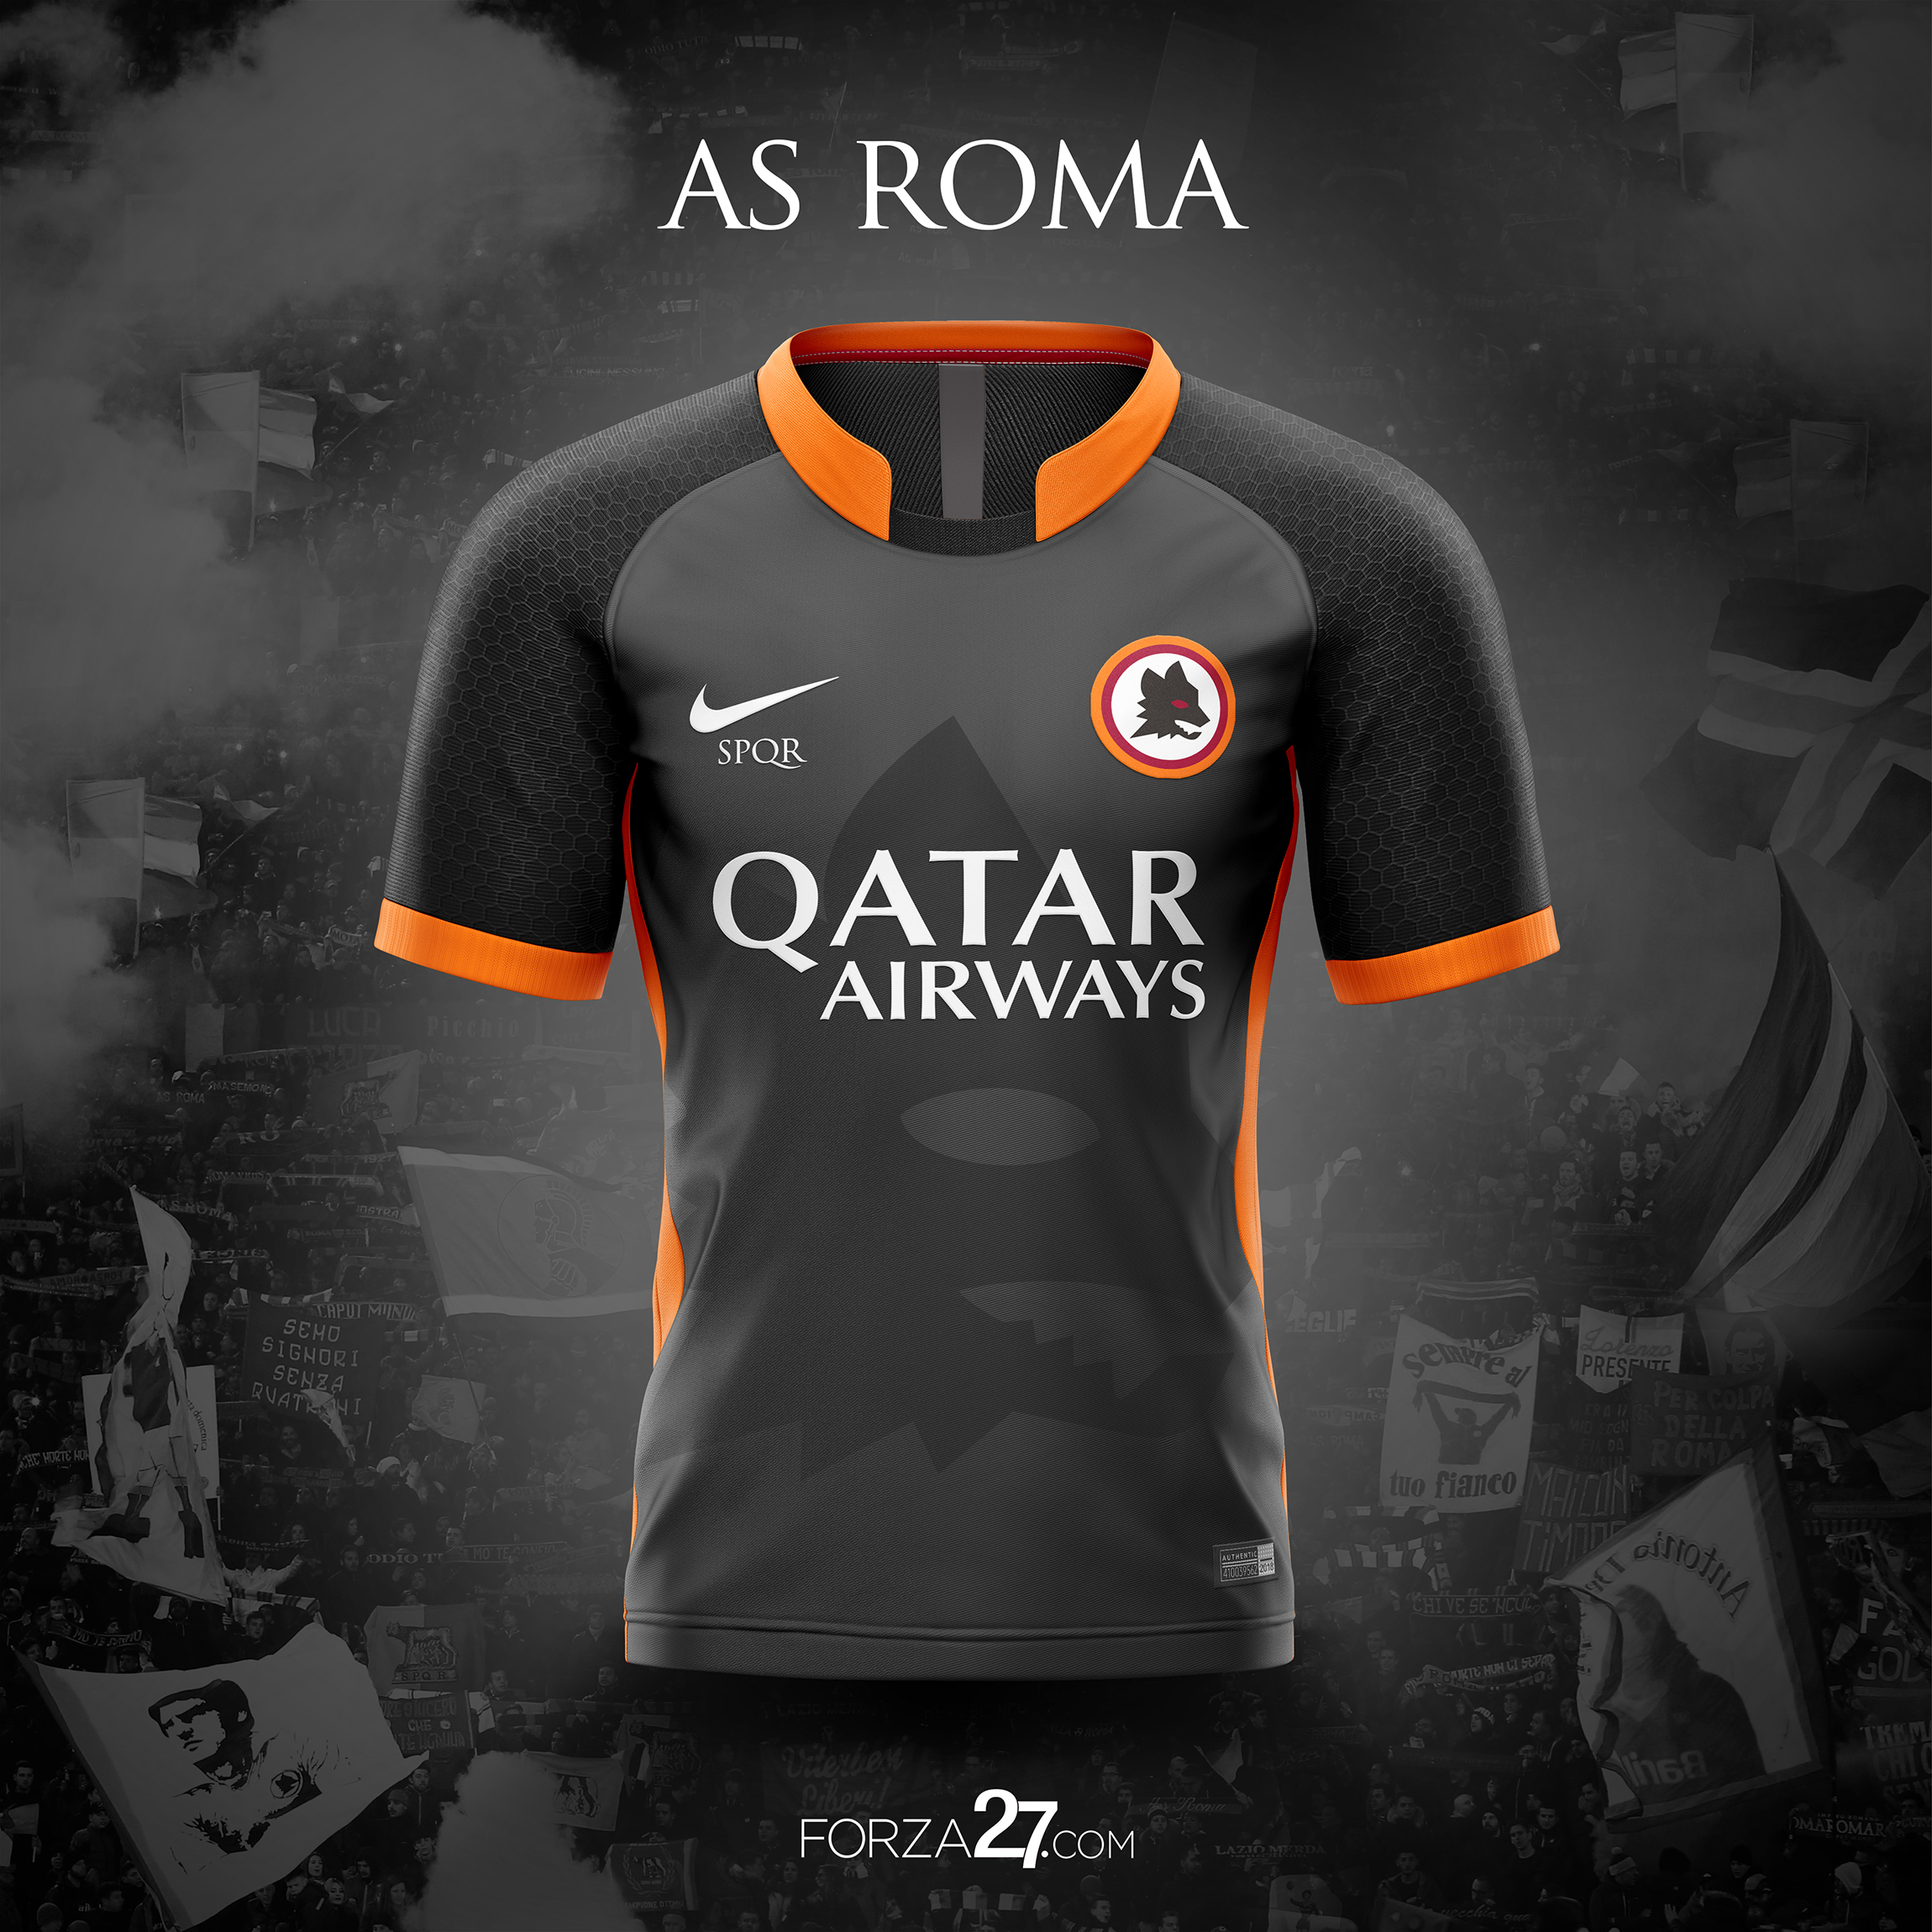 68562abb2 AS ROMA 2018 19 Nike Away Kit Concepts